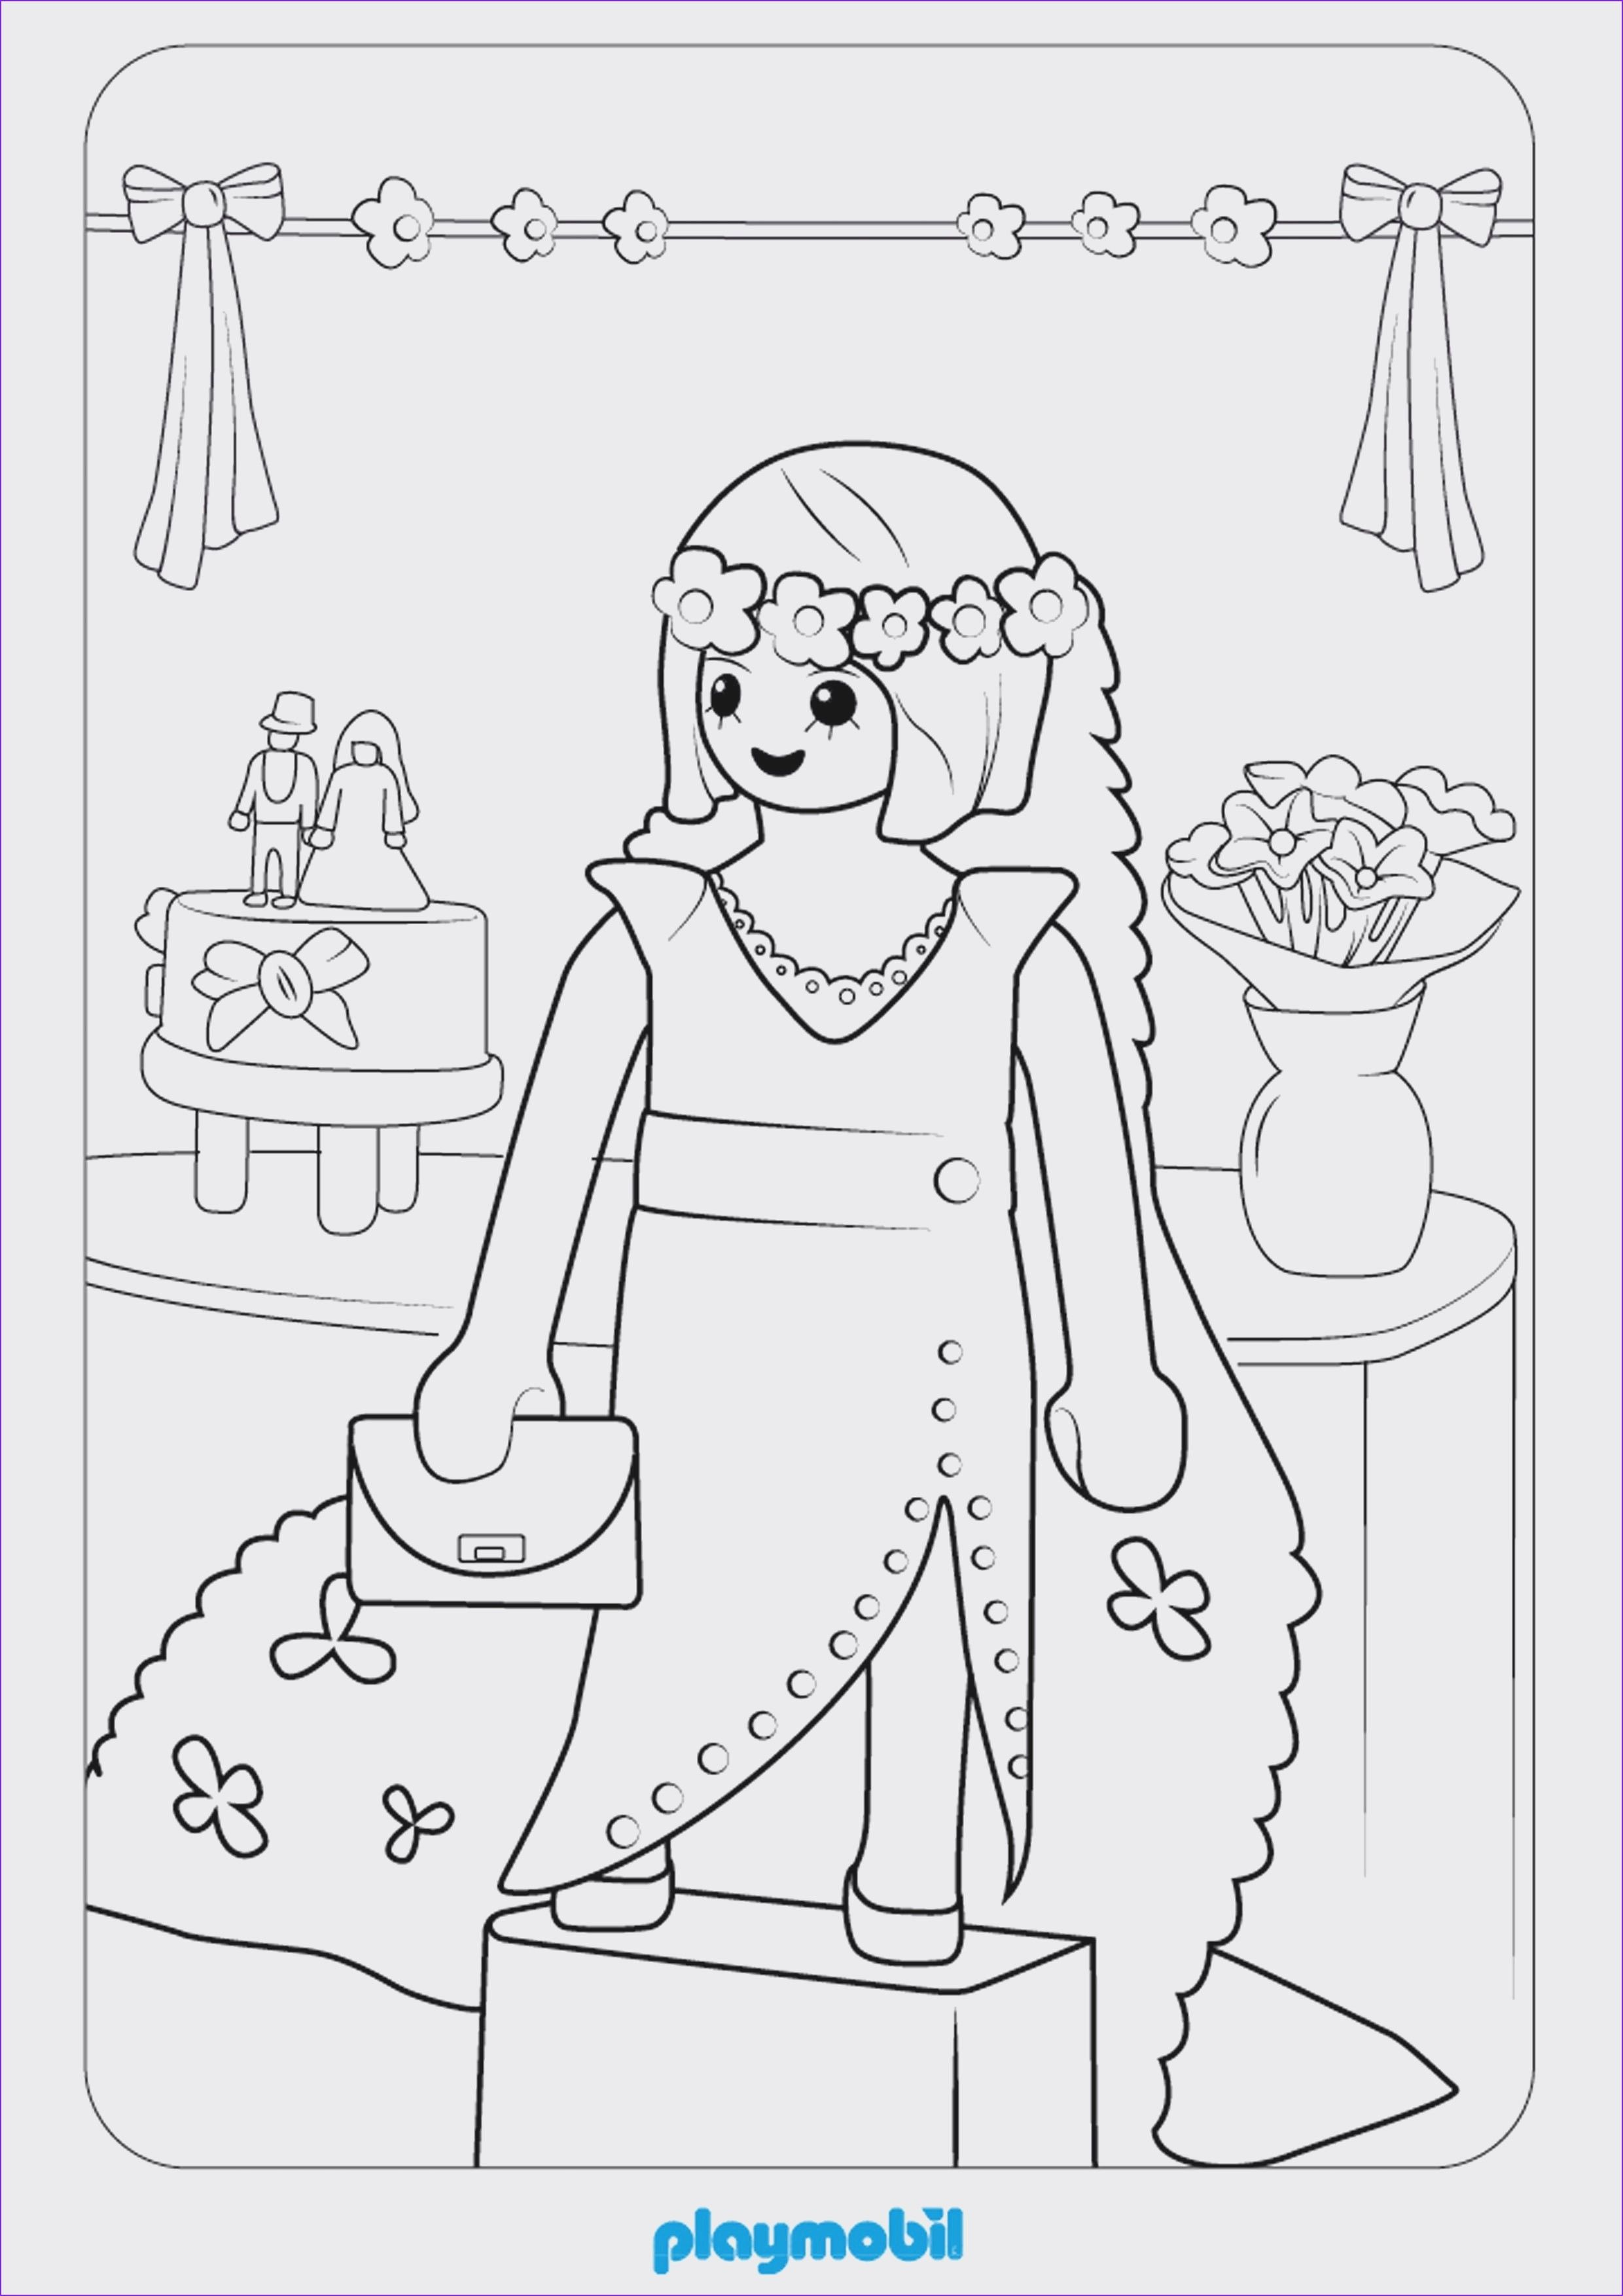 Einzigartig Ausmalbilder Tiere Bauernhof Kostenlos Pirate Coloring Pages Fairy Coloring Pages Coloring Pages